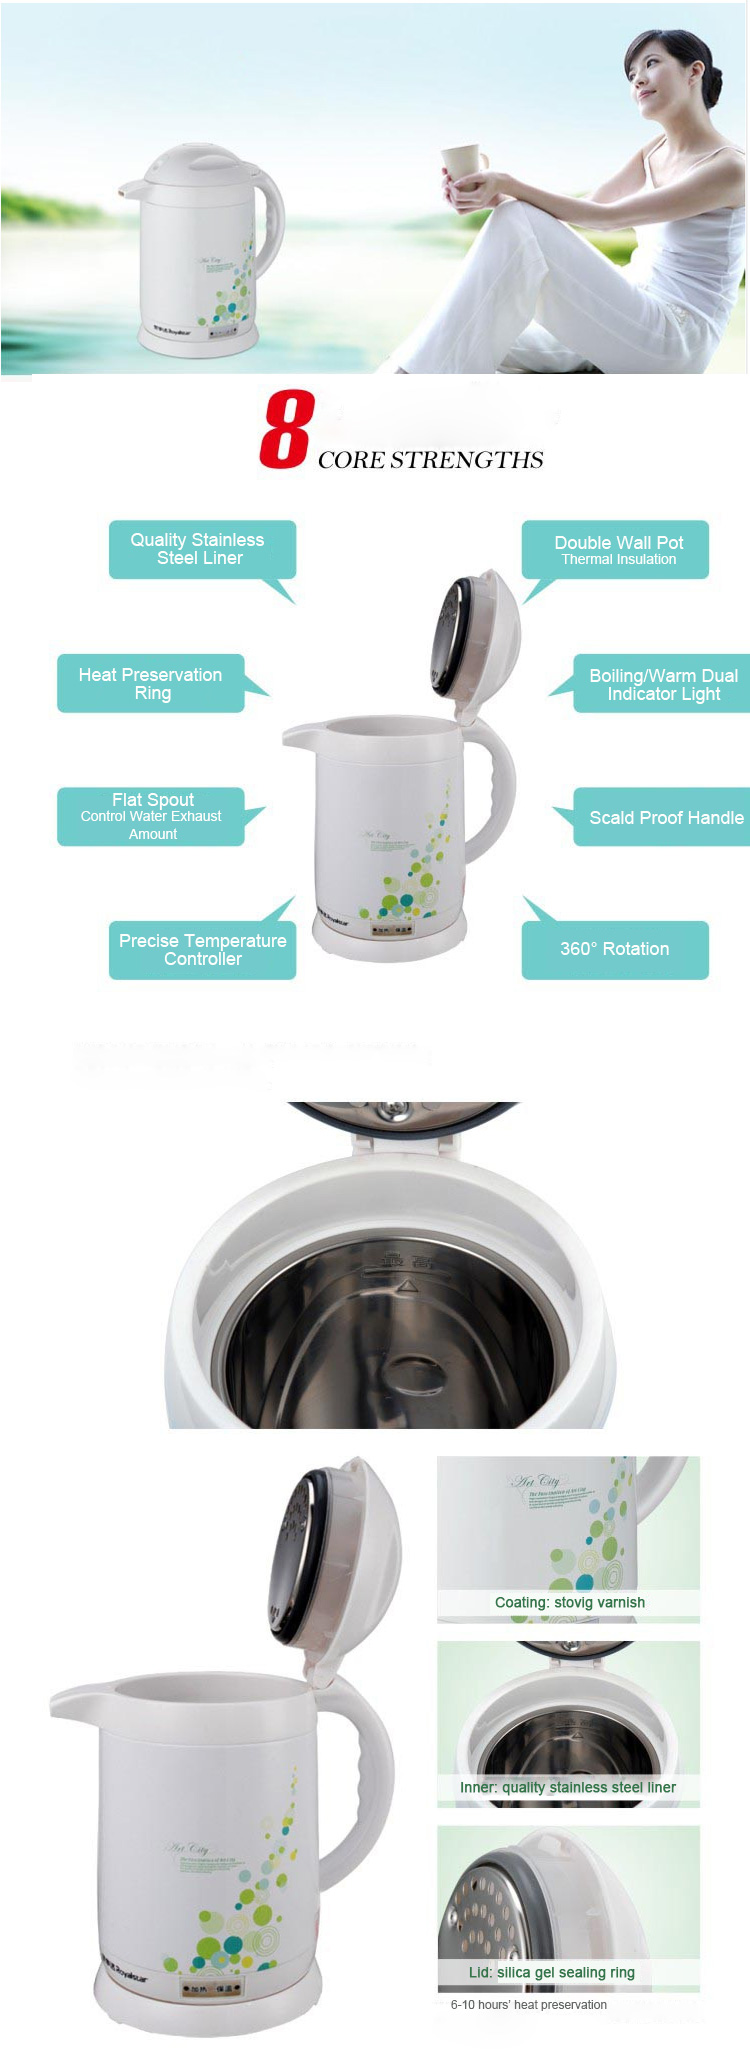 Royalstar 360 Degree Rotation Boiling Warm Electric Water Kettle